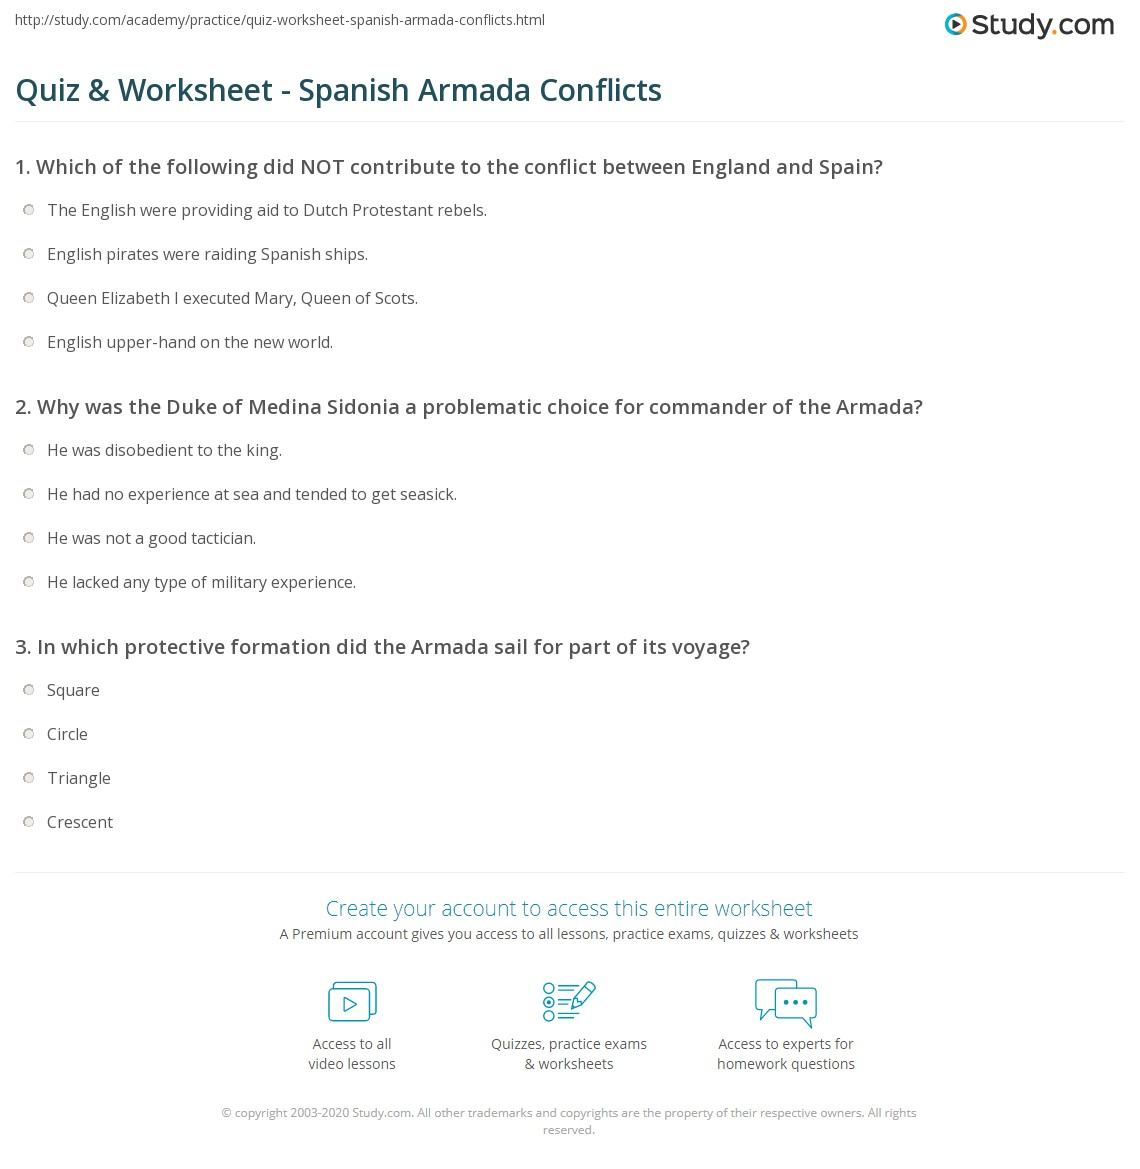 quiz worksheet spanish armada conflicts. Black Bedroom Furniture Sets. Home Design Ideas